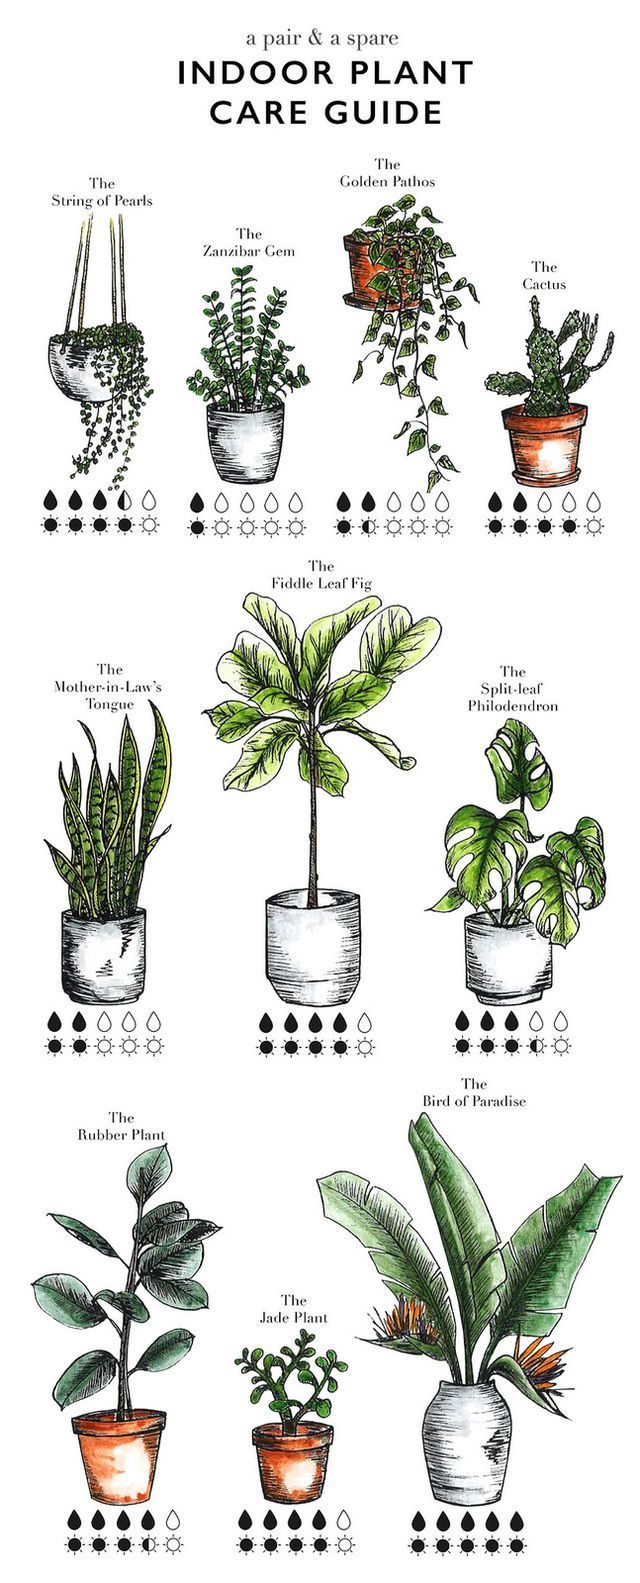 Indoor plant care guide.